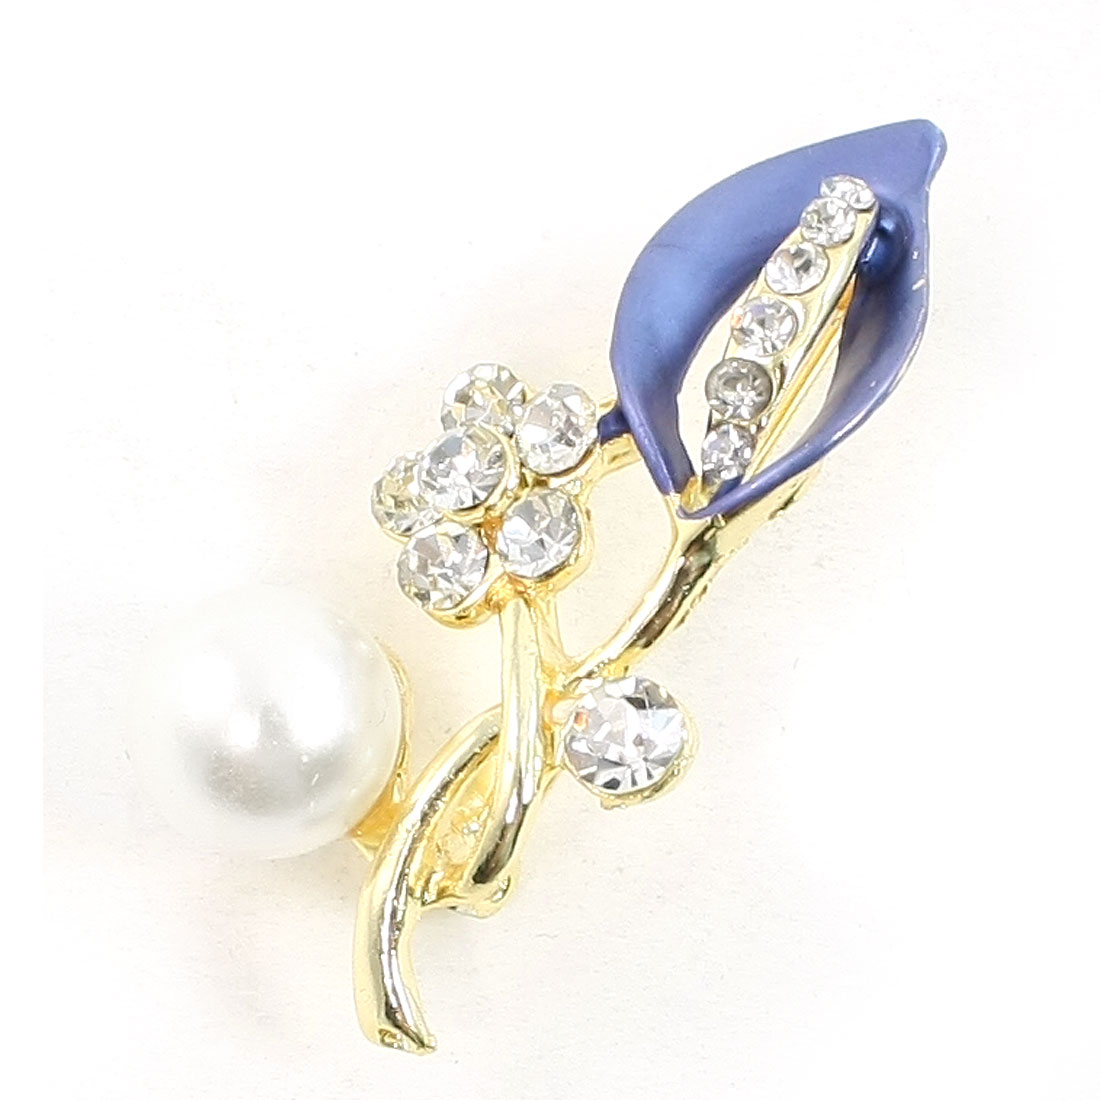 Rhinestone Accent Floral Leave Safety Pin Brooch Breastpin Yale Blue for Ladies